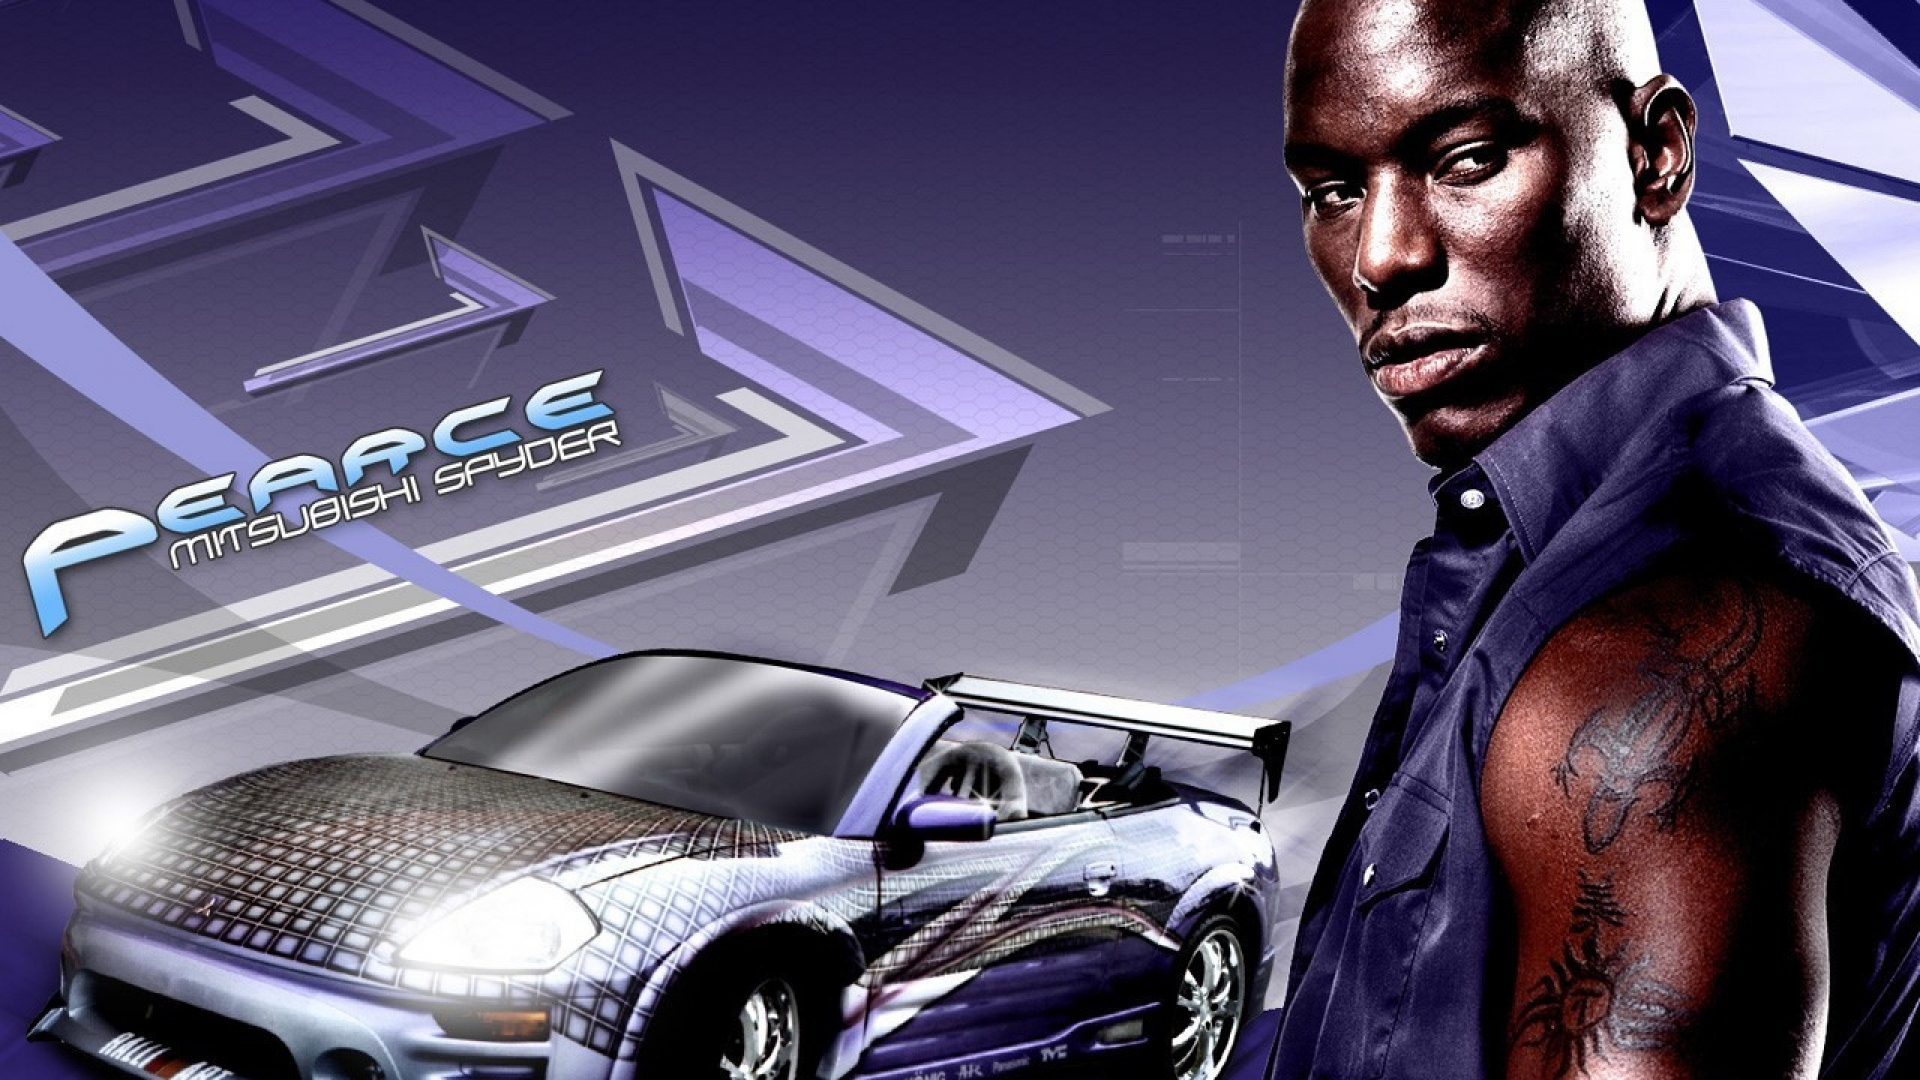 Fast And Furious Cars Hd Wallpapers Fast And Furious Backgrounds Free Download Pixelstalk Net